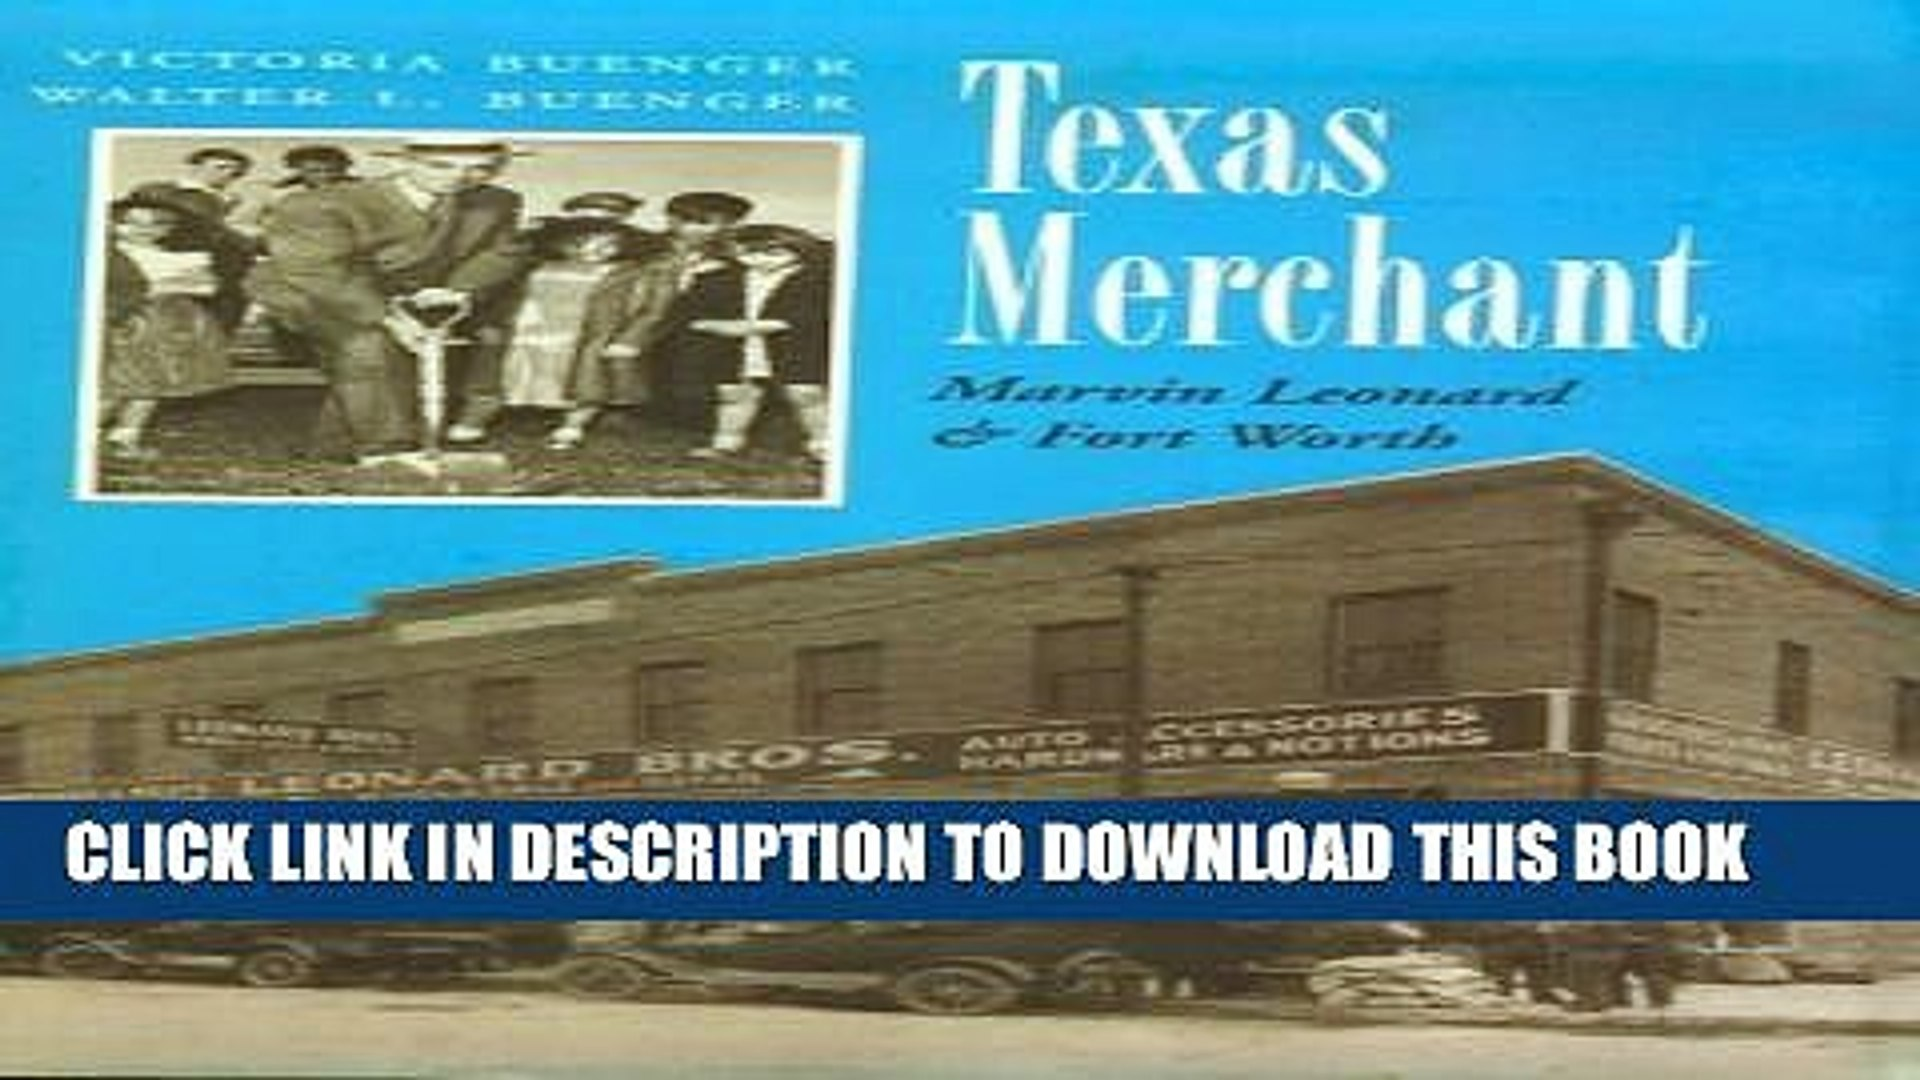 Collection Book Texas Merchant: Marvin Leonard and Fort Worth (Kenneth E. Montague Series in Oil